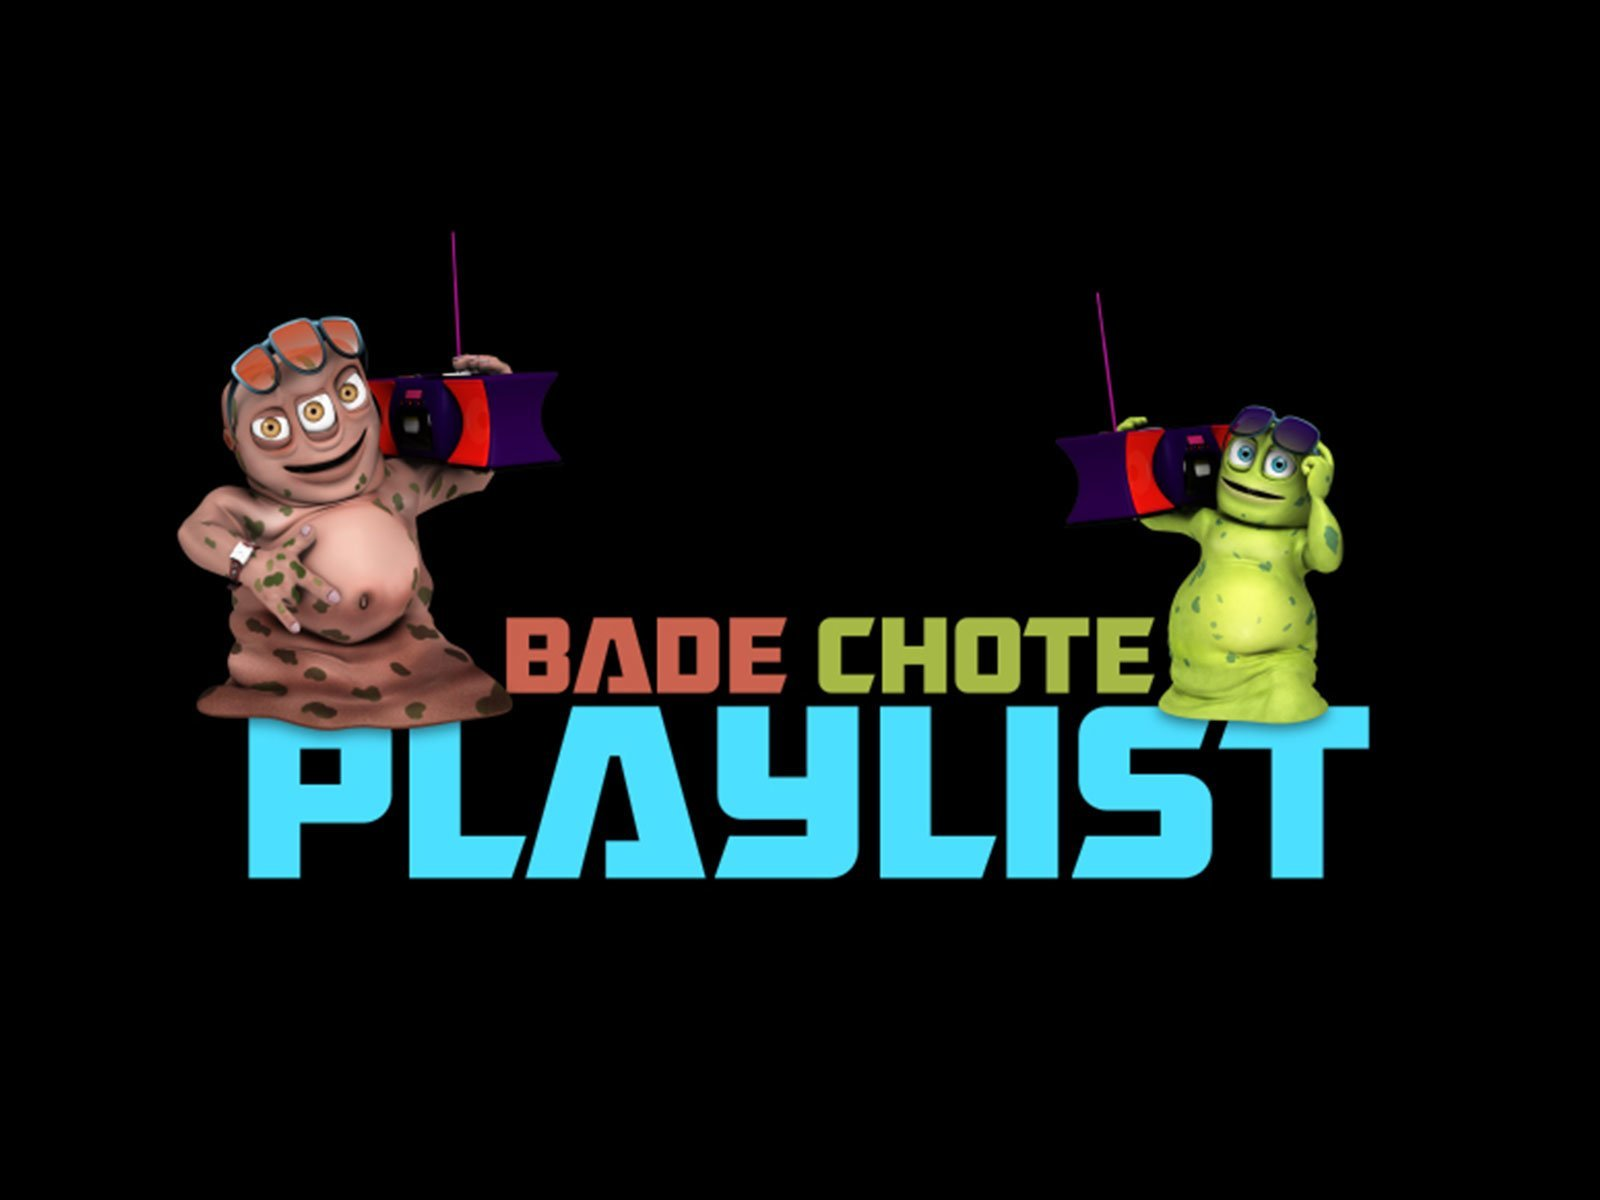 Bade-Chote's Playlist-9XM